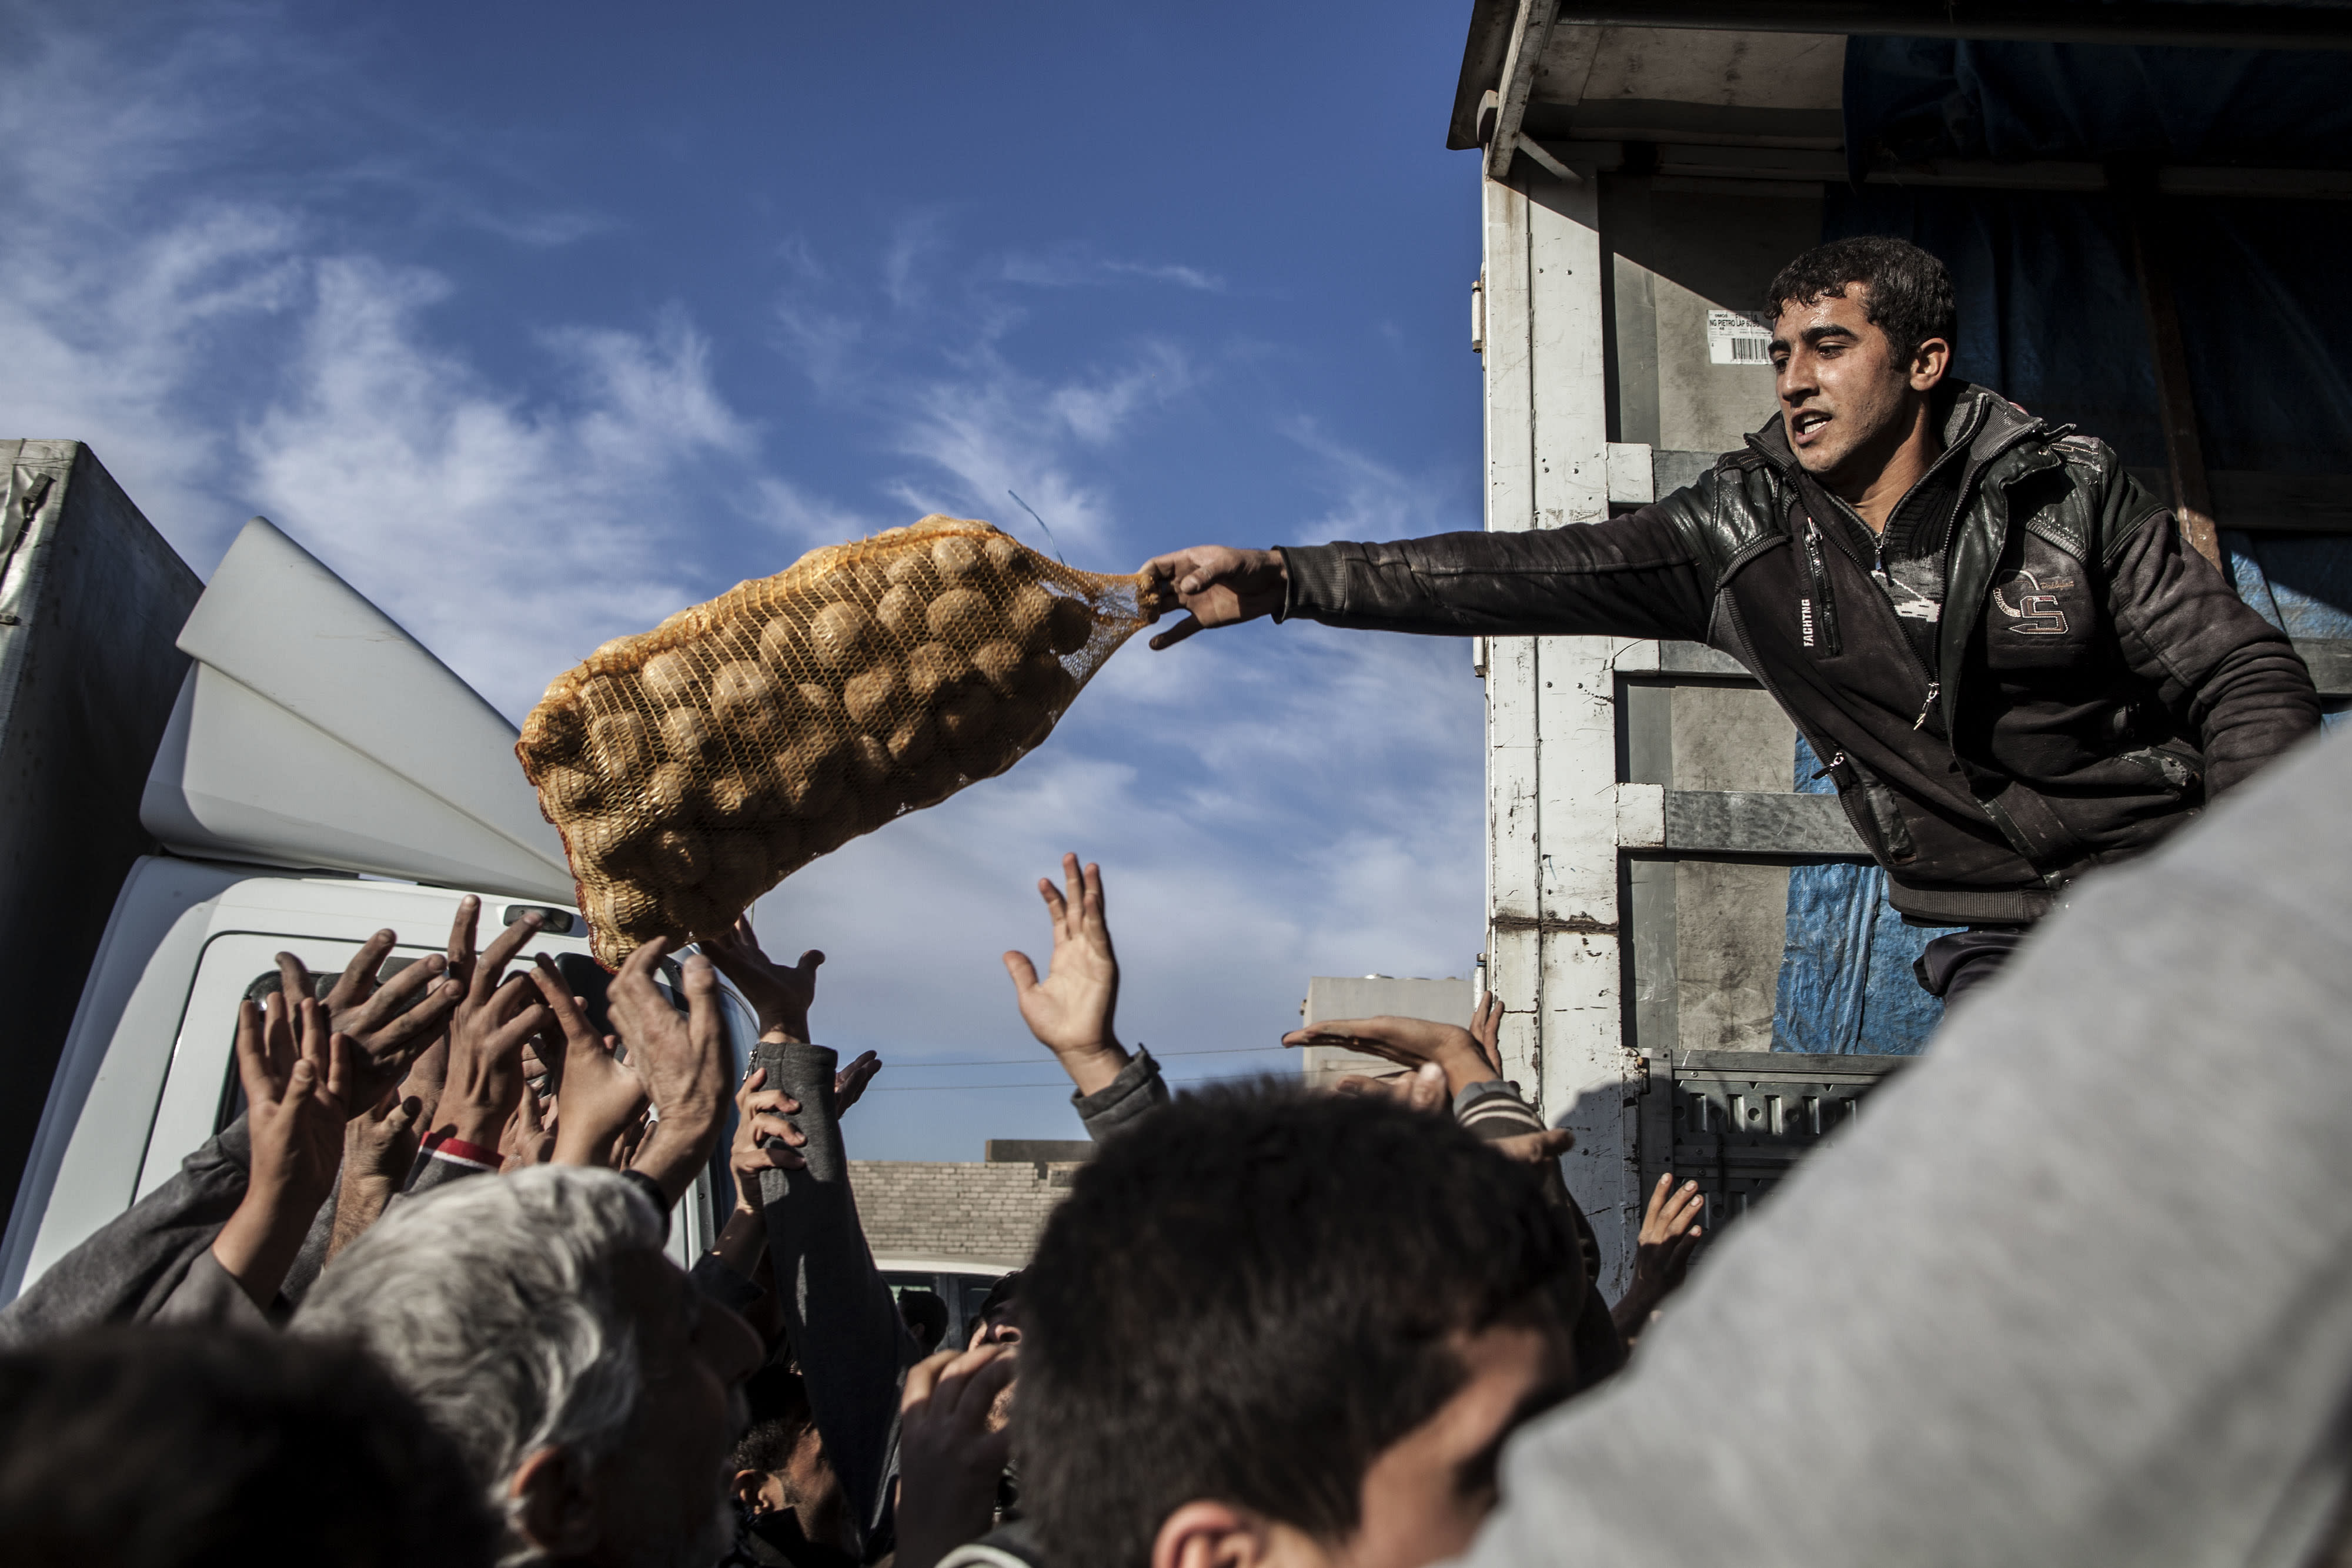 Chaos erupts as Iraq delivers aid to Mosul